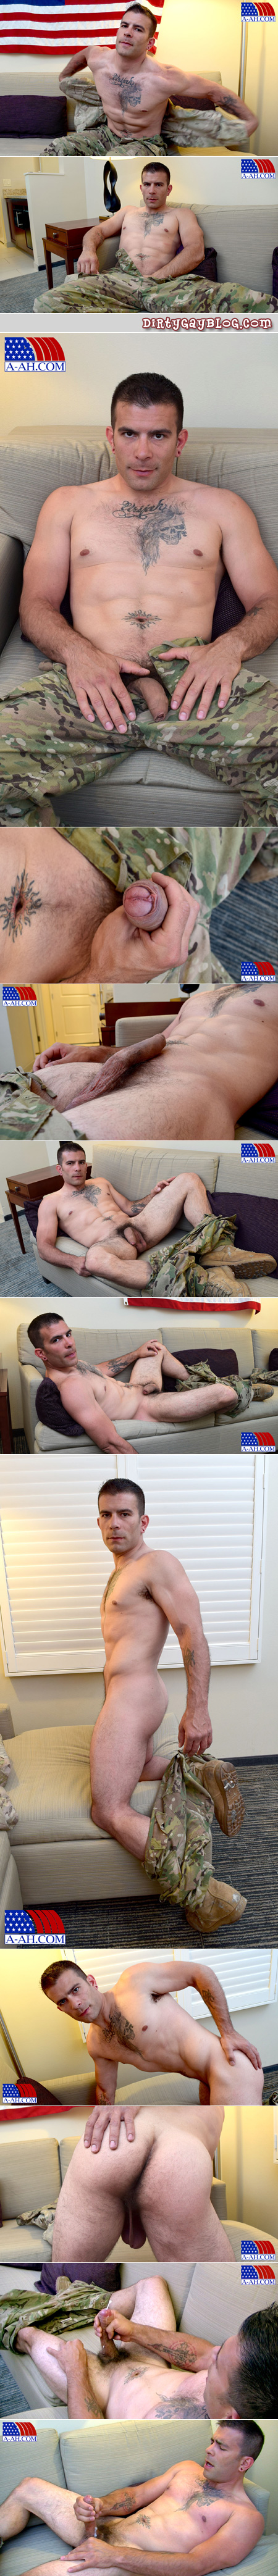 Inked, muscular, hairy Army man jacking his uncut cock and cumming.